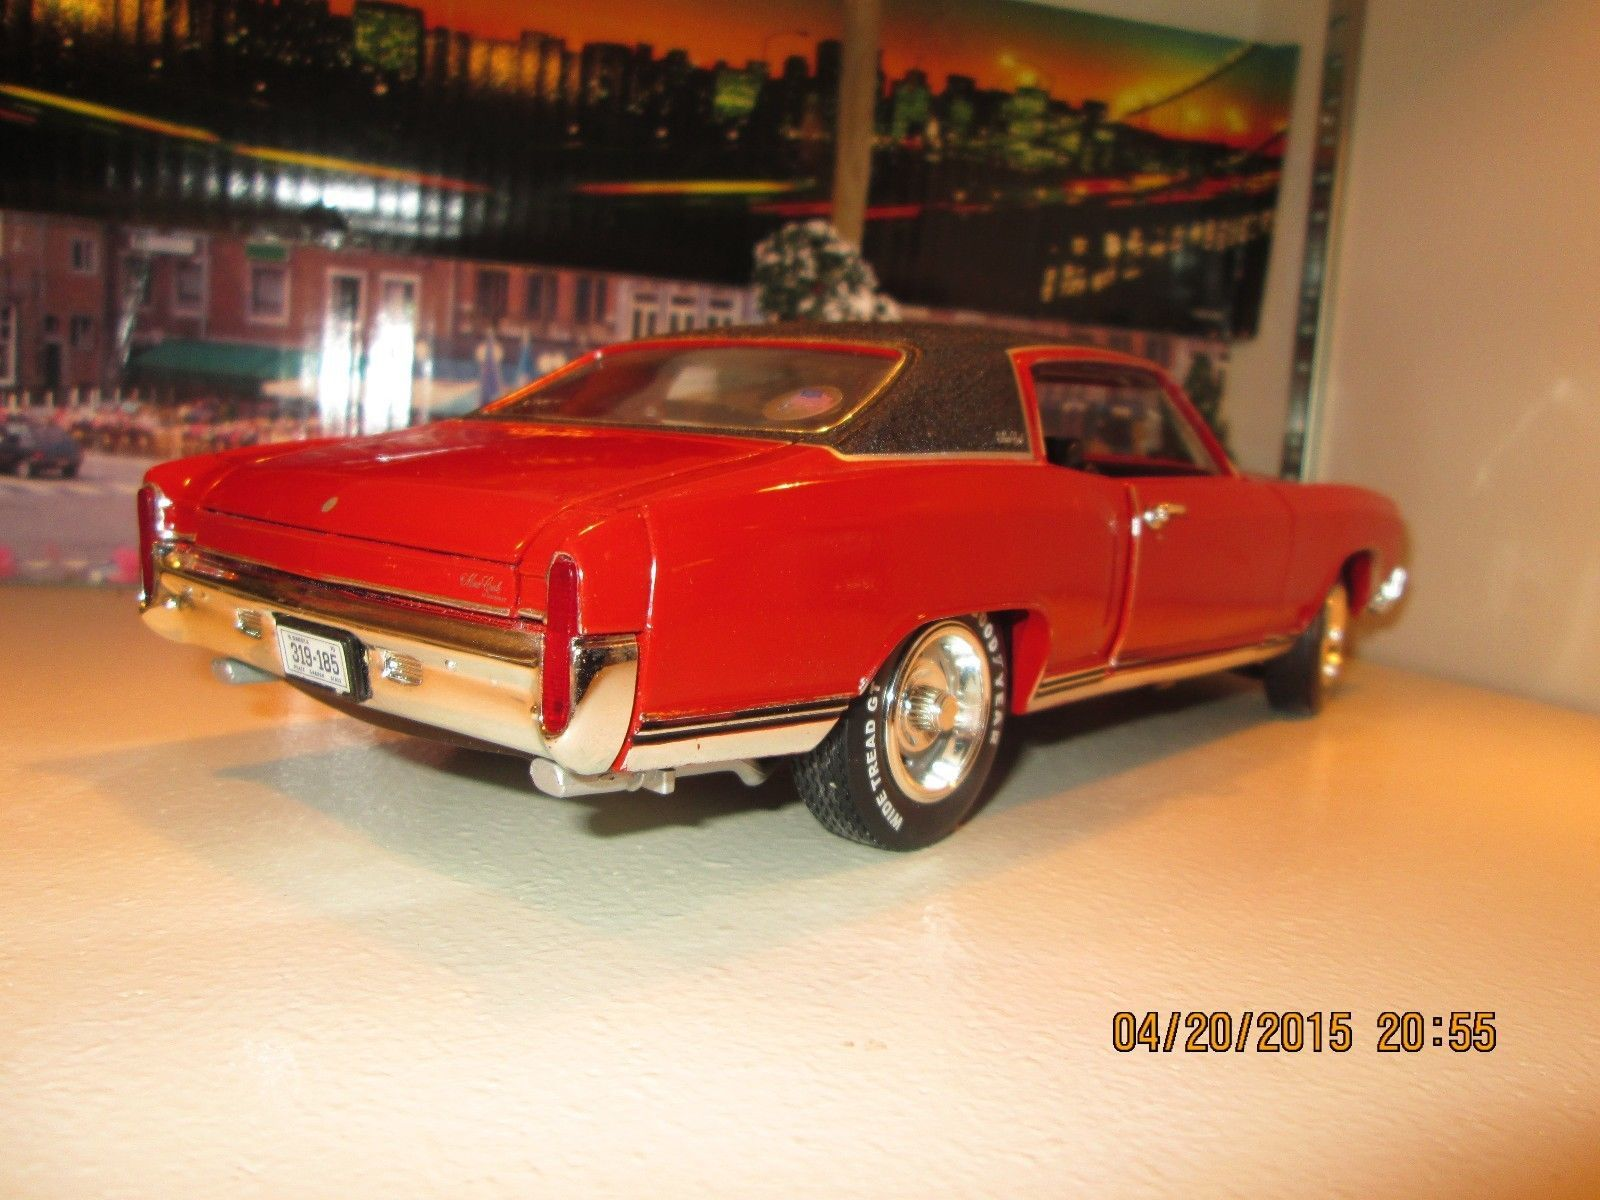 1970 monte carlo ss 454 1 18 ertl american muscle hobby edition 1 of 5000 rare